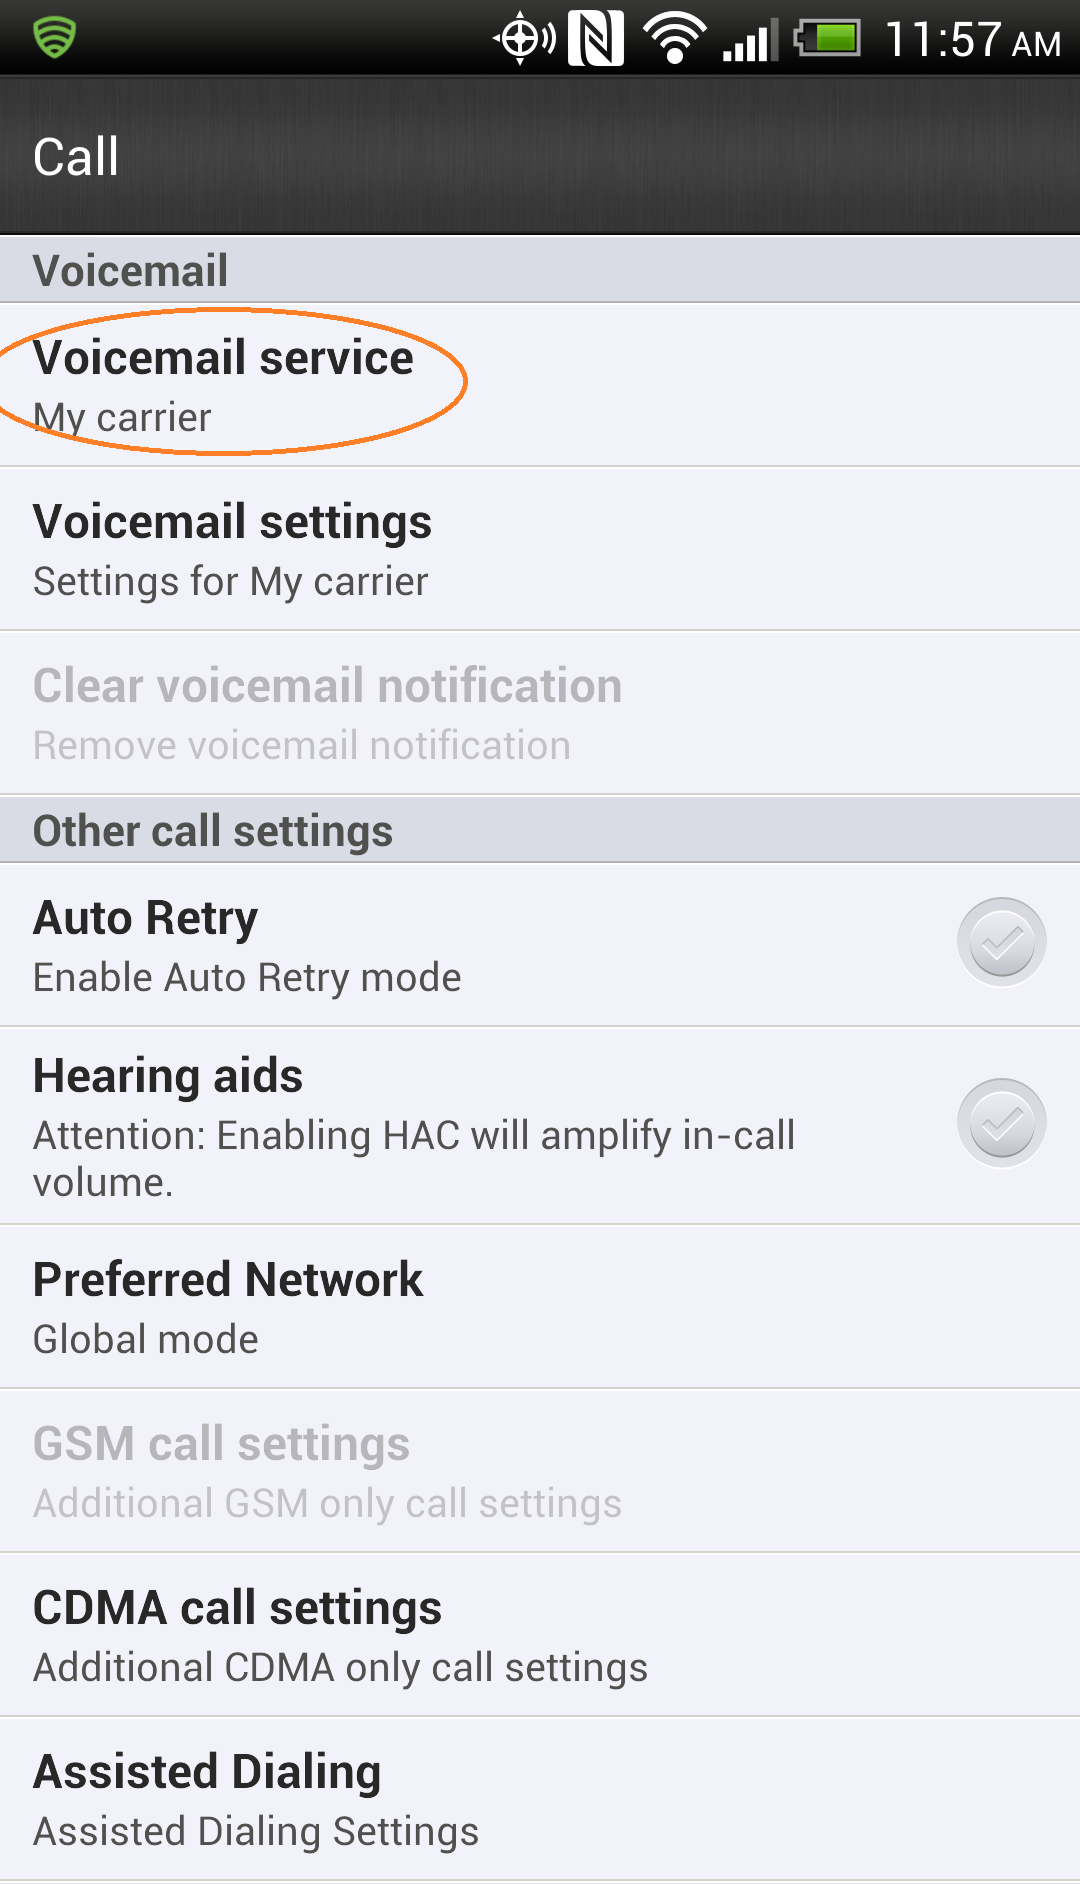 voicemail settings